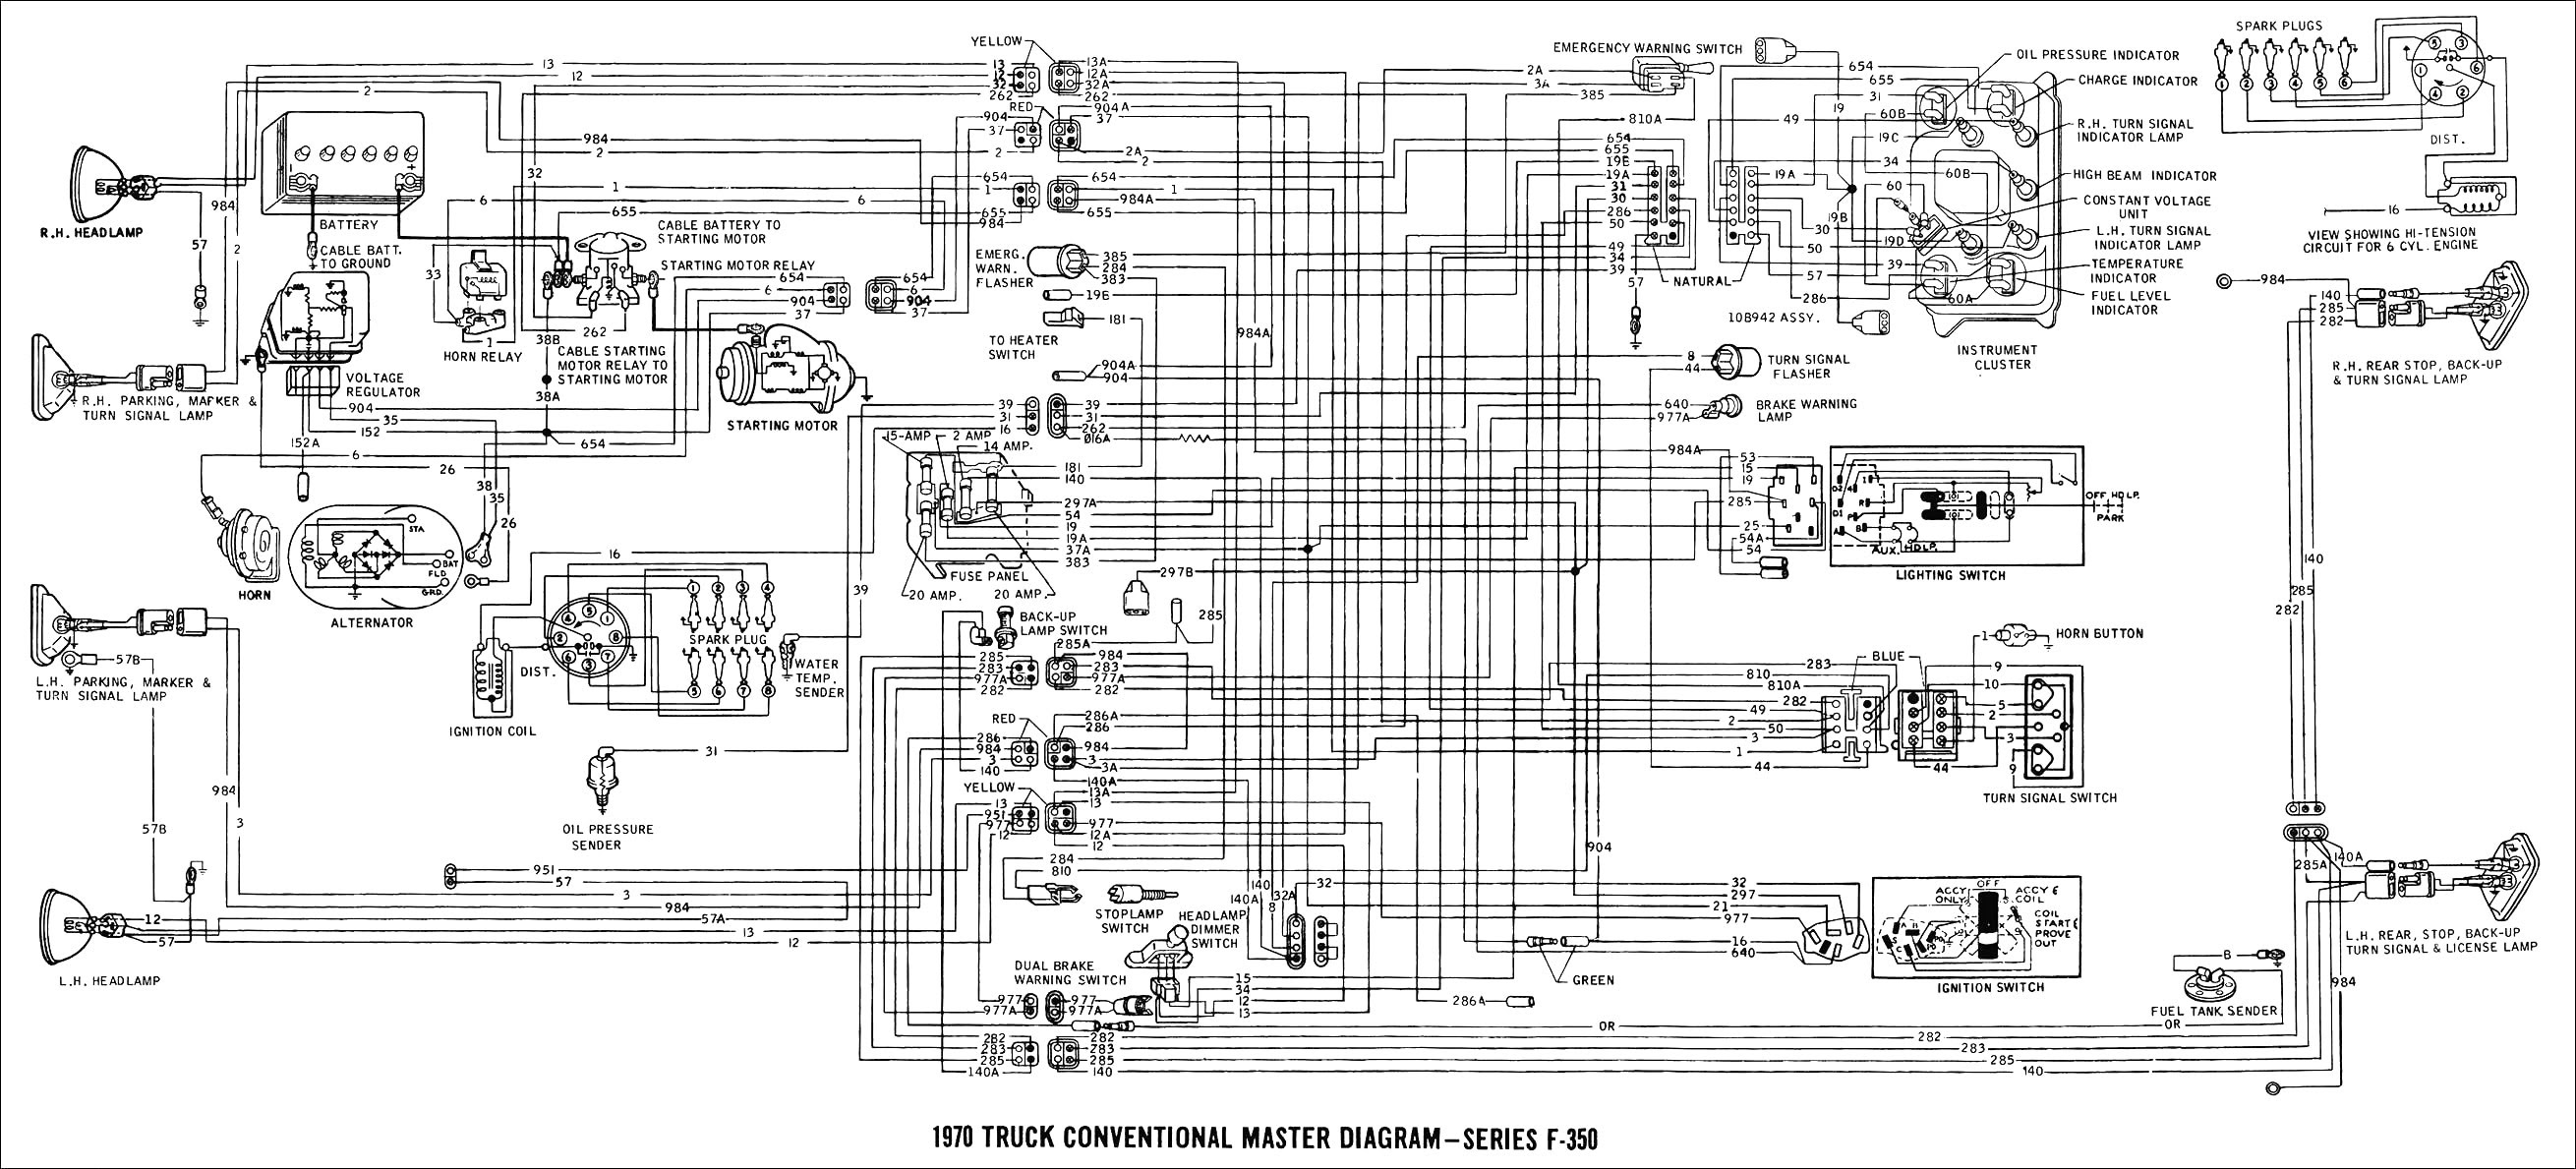 1997 Ford Ranger 4 0 Wiring Diagram - Wiring Diagram